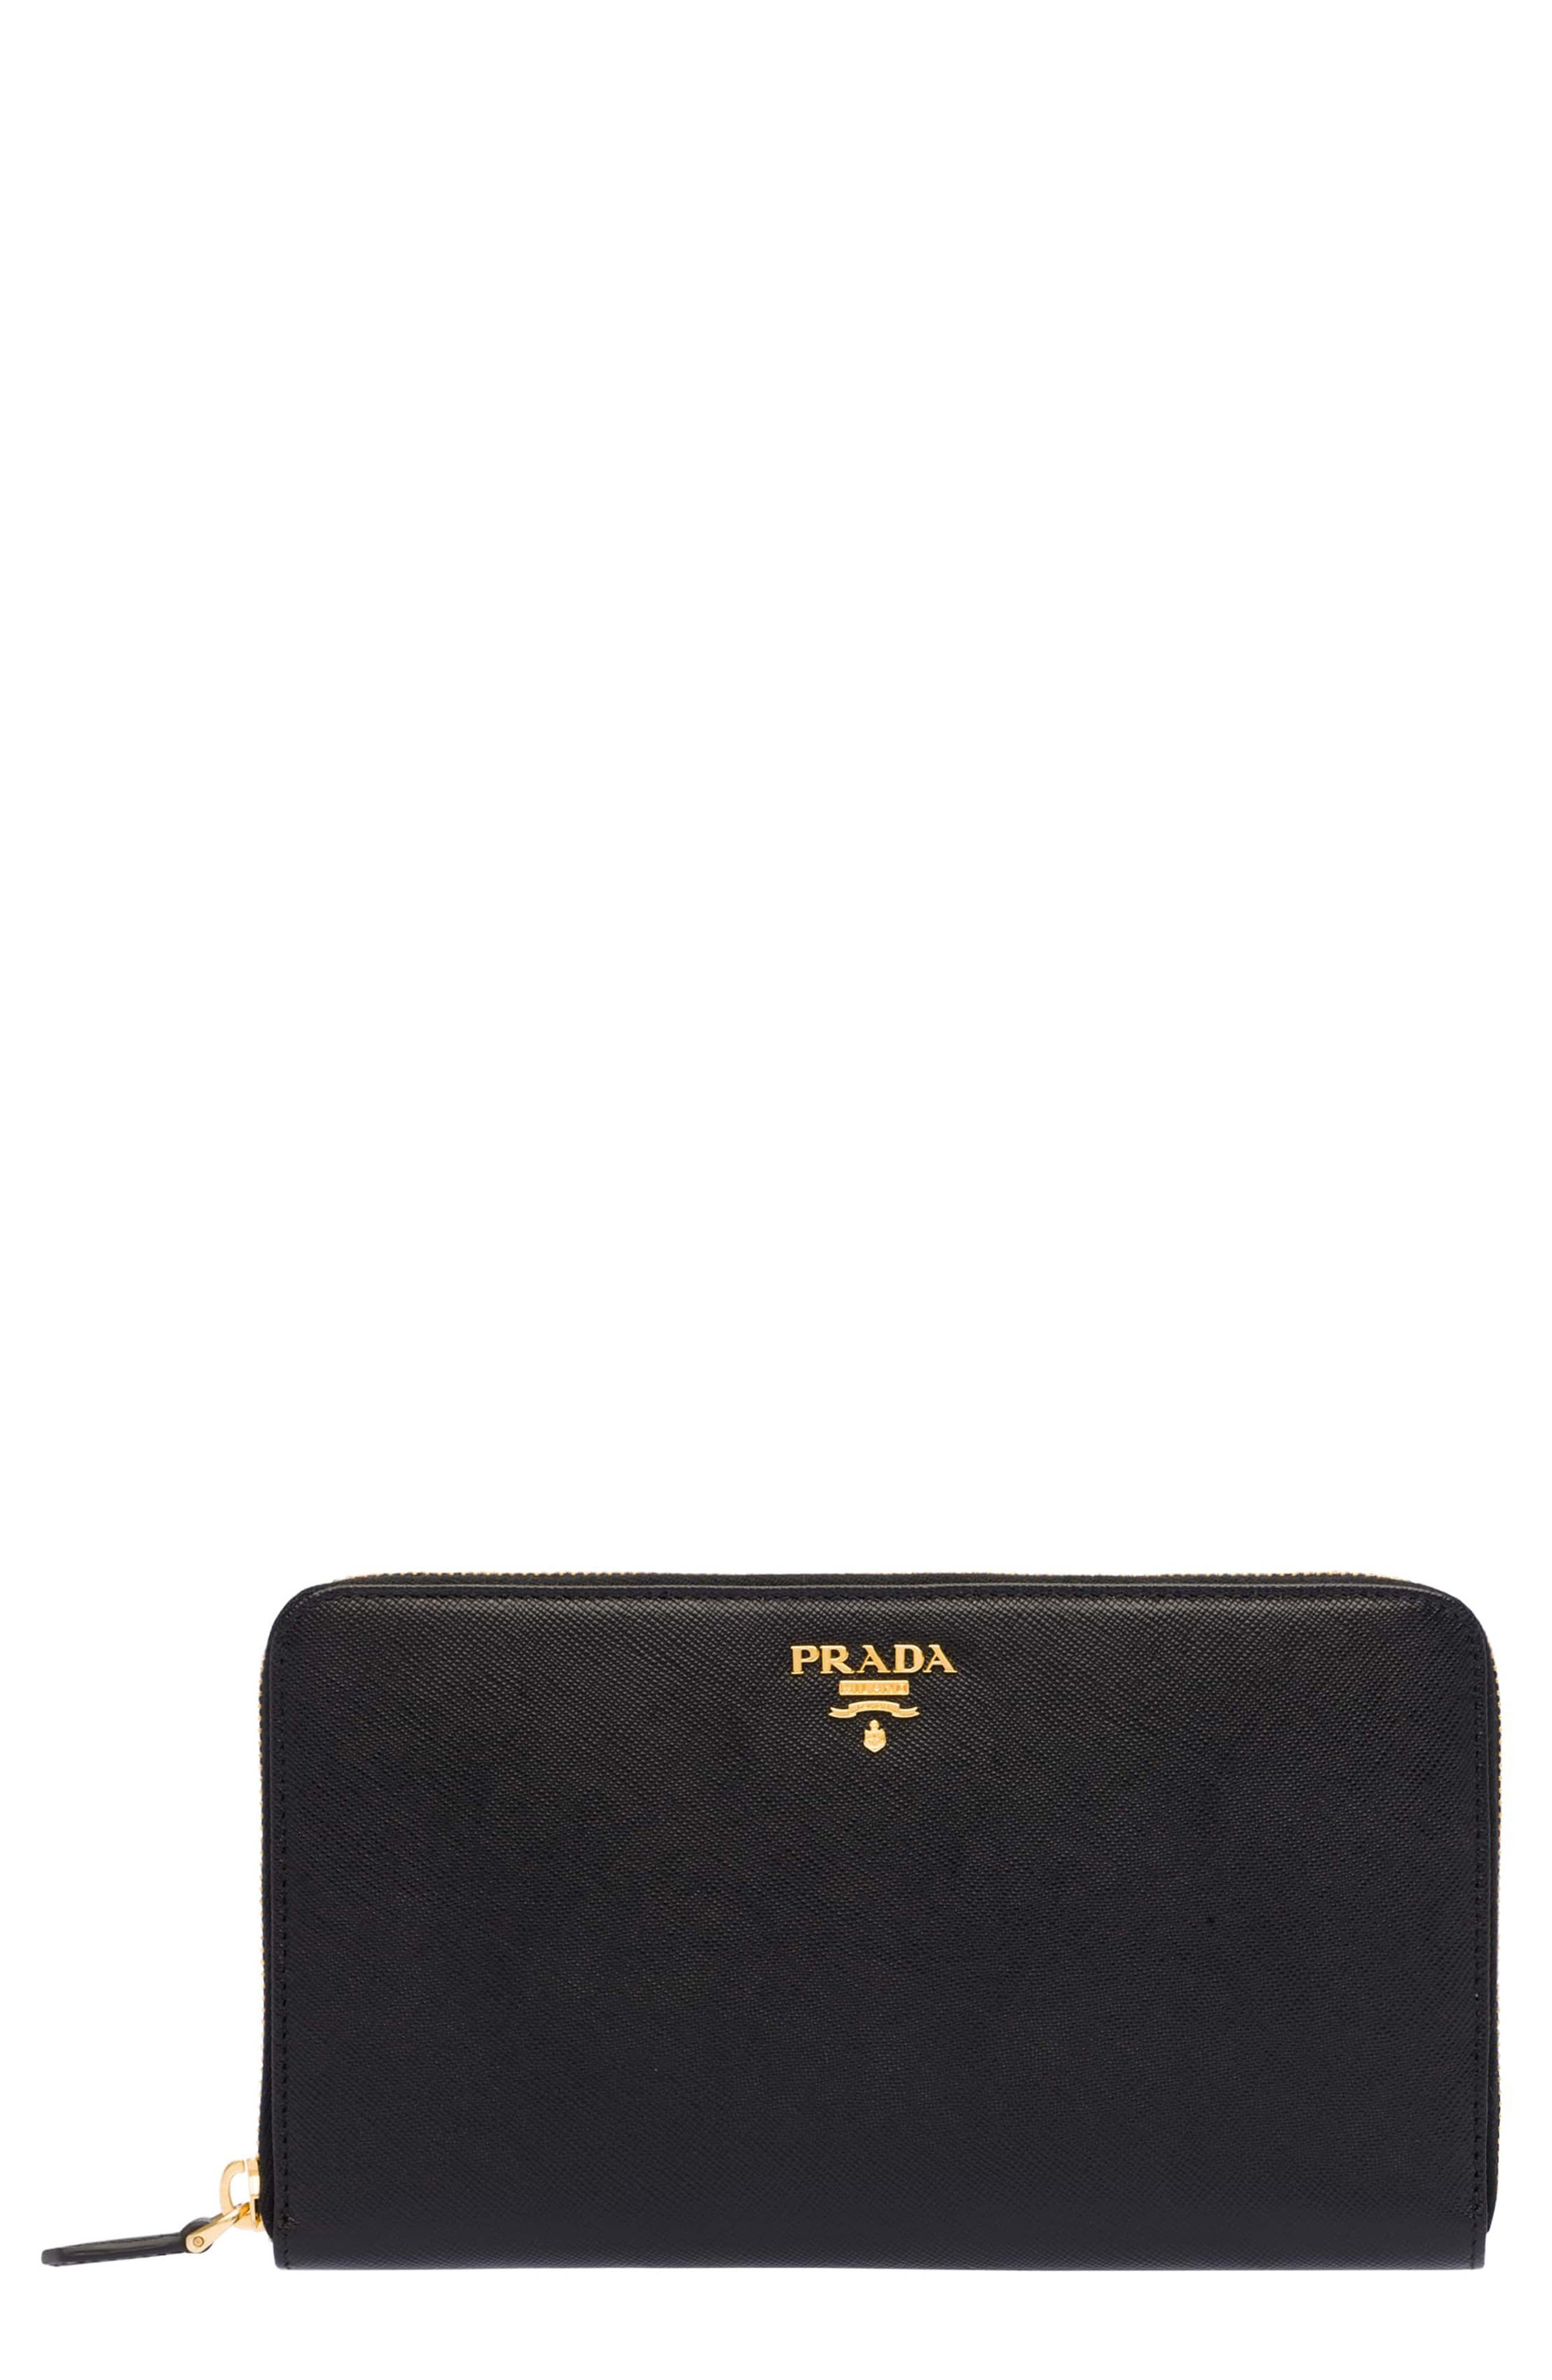 Alternate Image 1 Selected - Prada Oro Saffiano Leather Zip Around Wallet